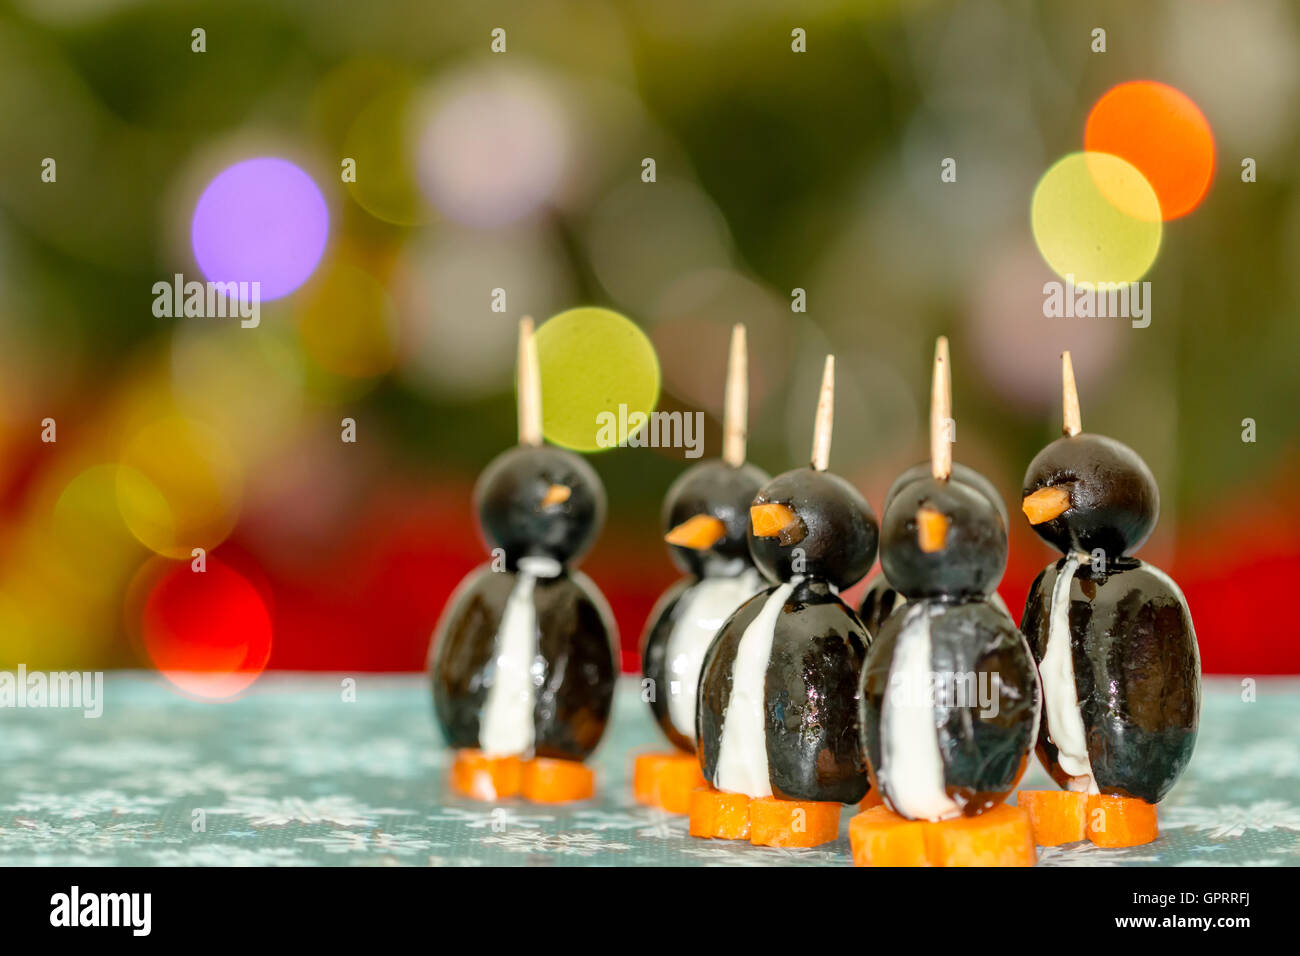 funny-looking penguins with olives, cheese and carrots - Stock Image